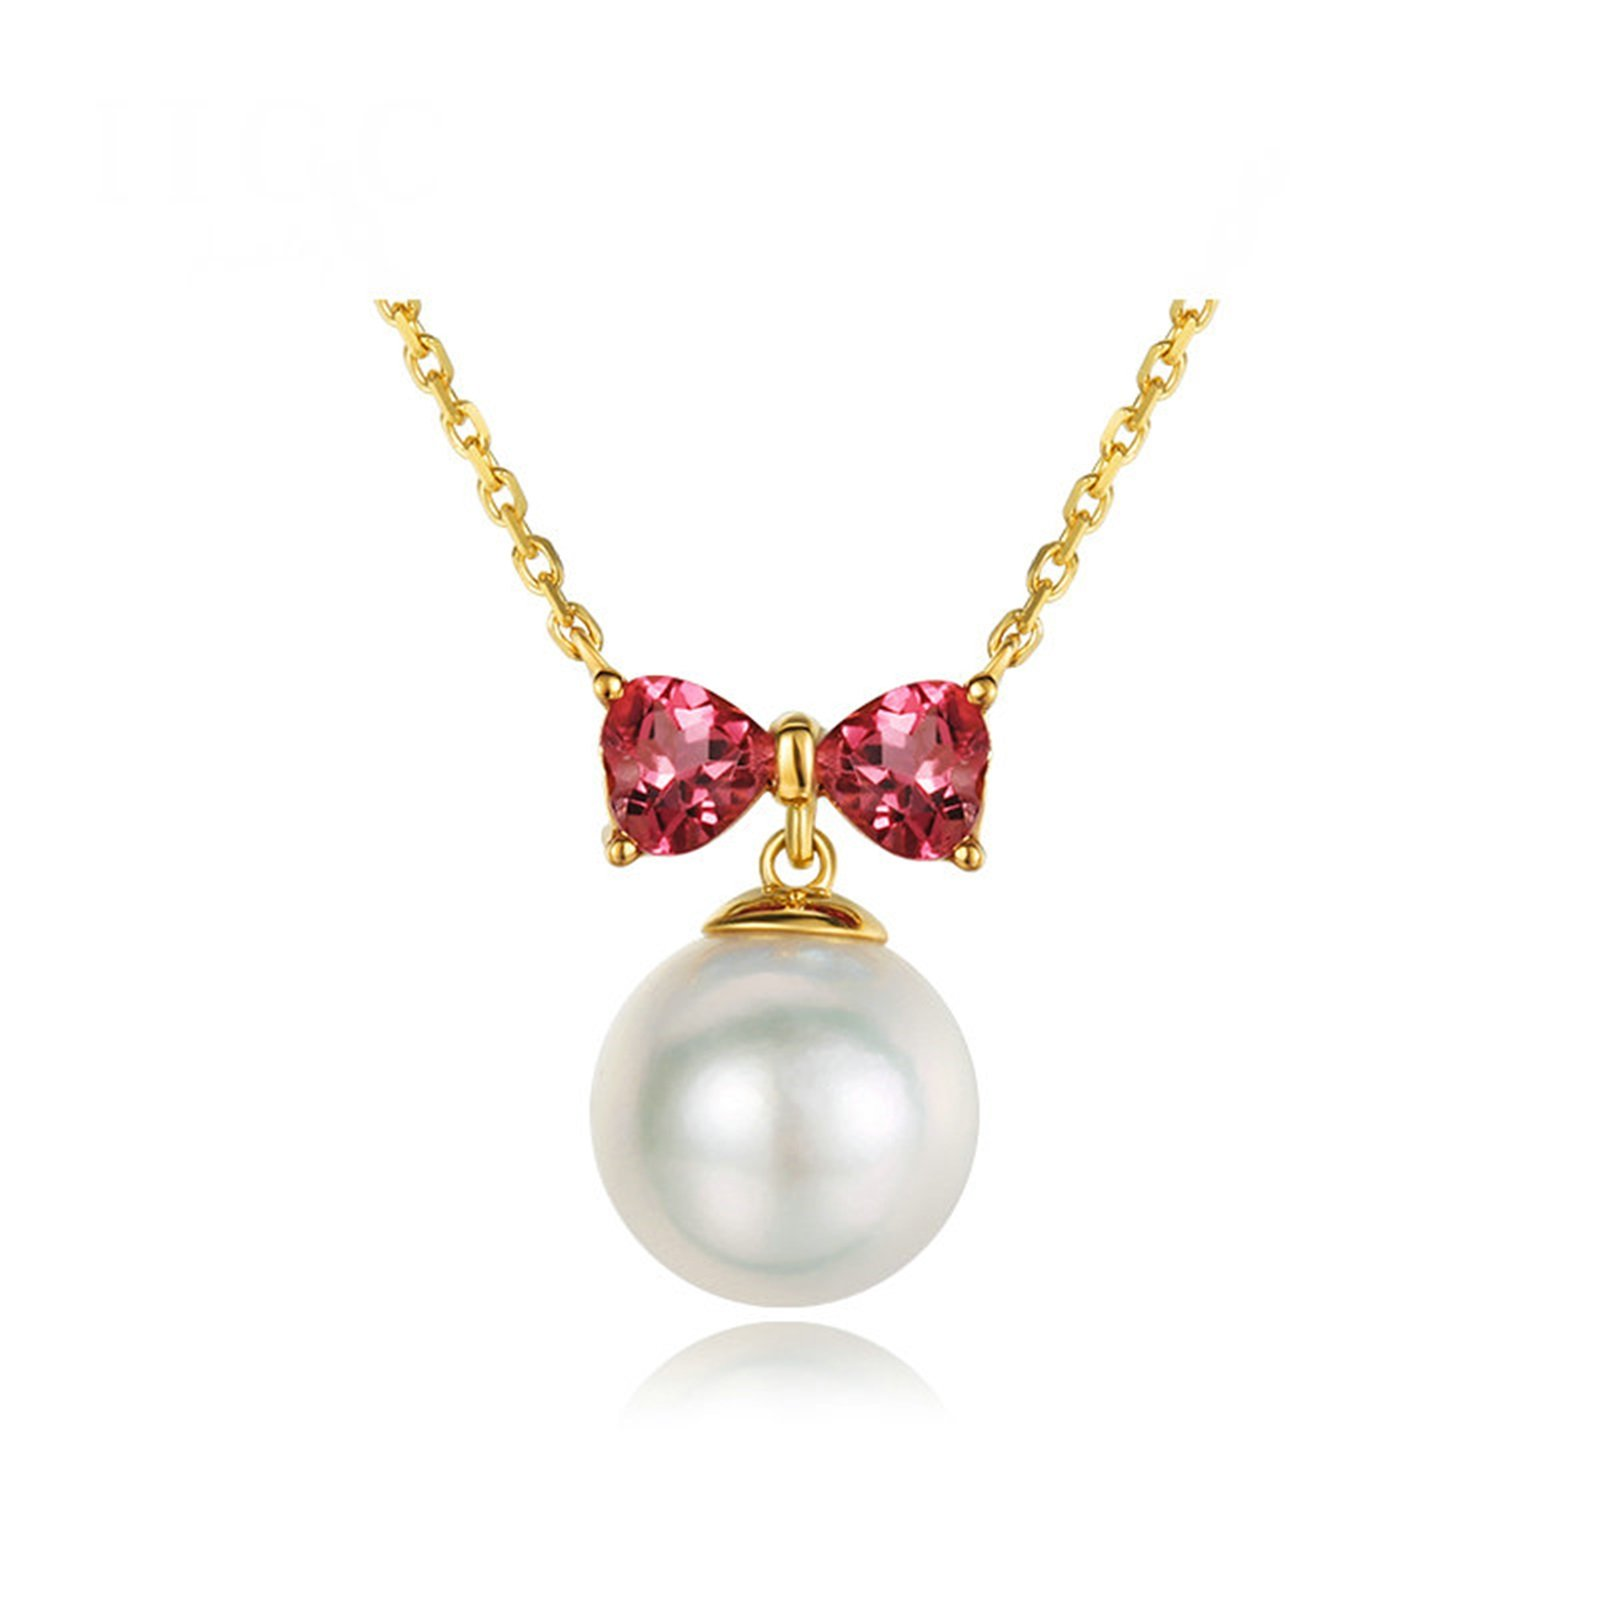 Daesar 18K Gold Necklace For Women Butterflies And Pearls Cubic Zirconia Red Necklace Chain Length: 40CM